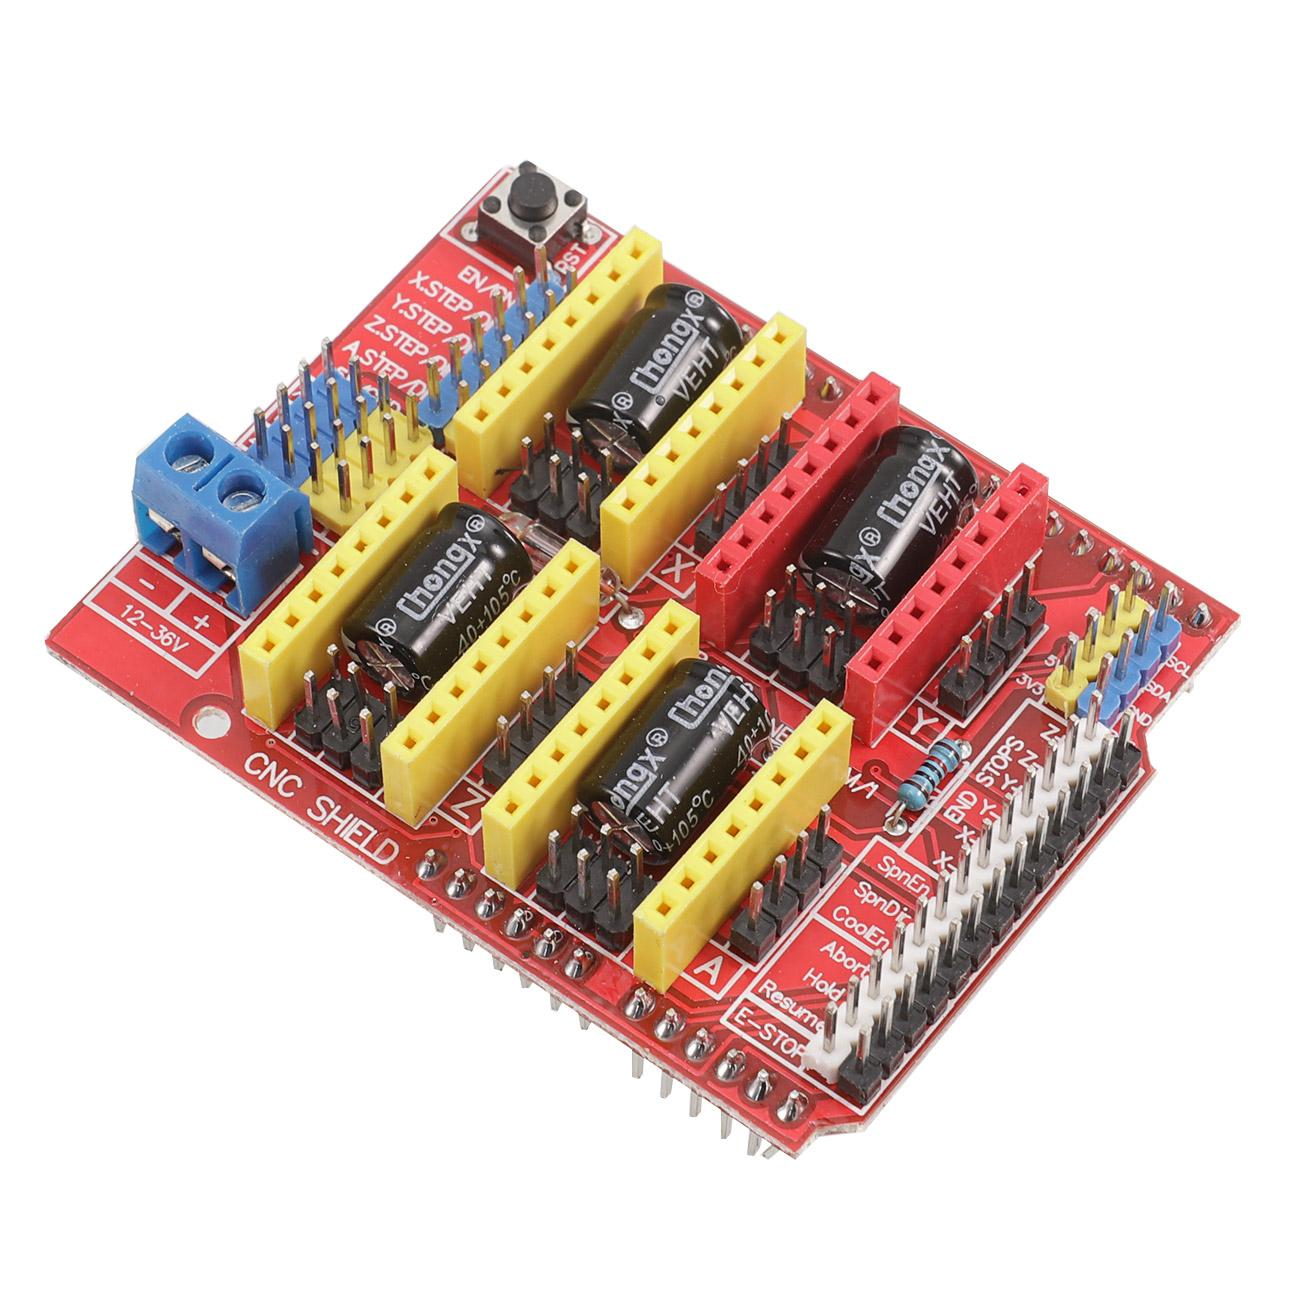 4x TI DRV8825 D3U1 For Arduino Compatible Board CNC V3 Shield